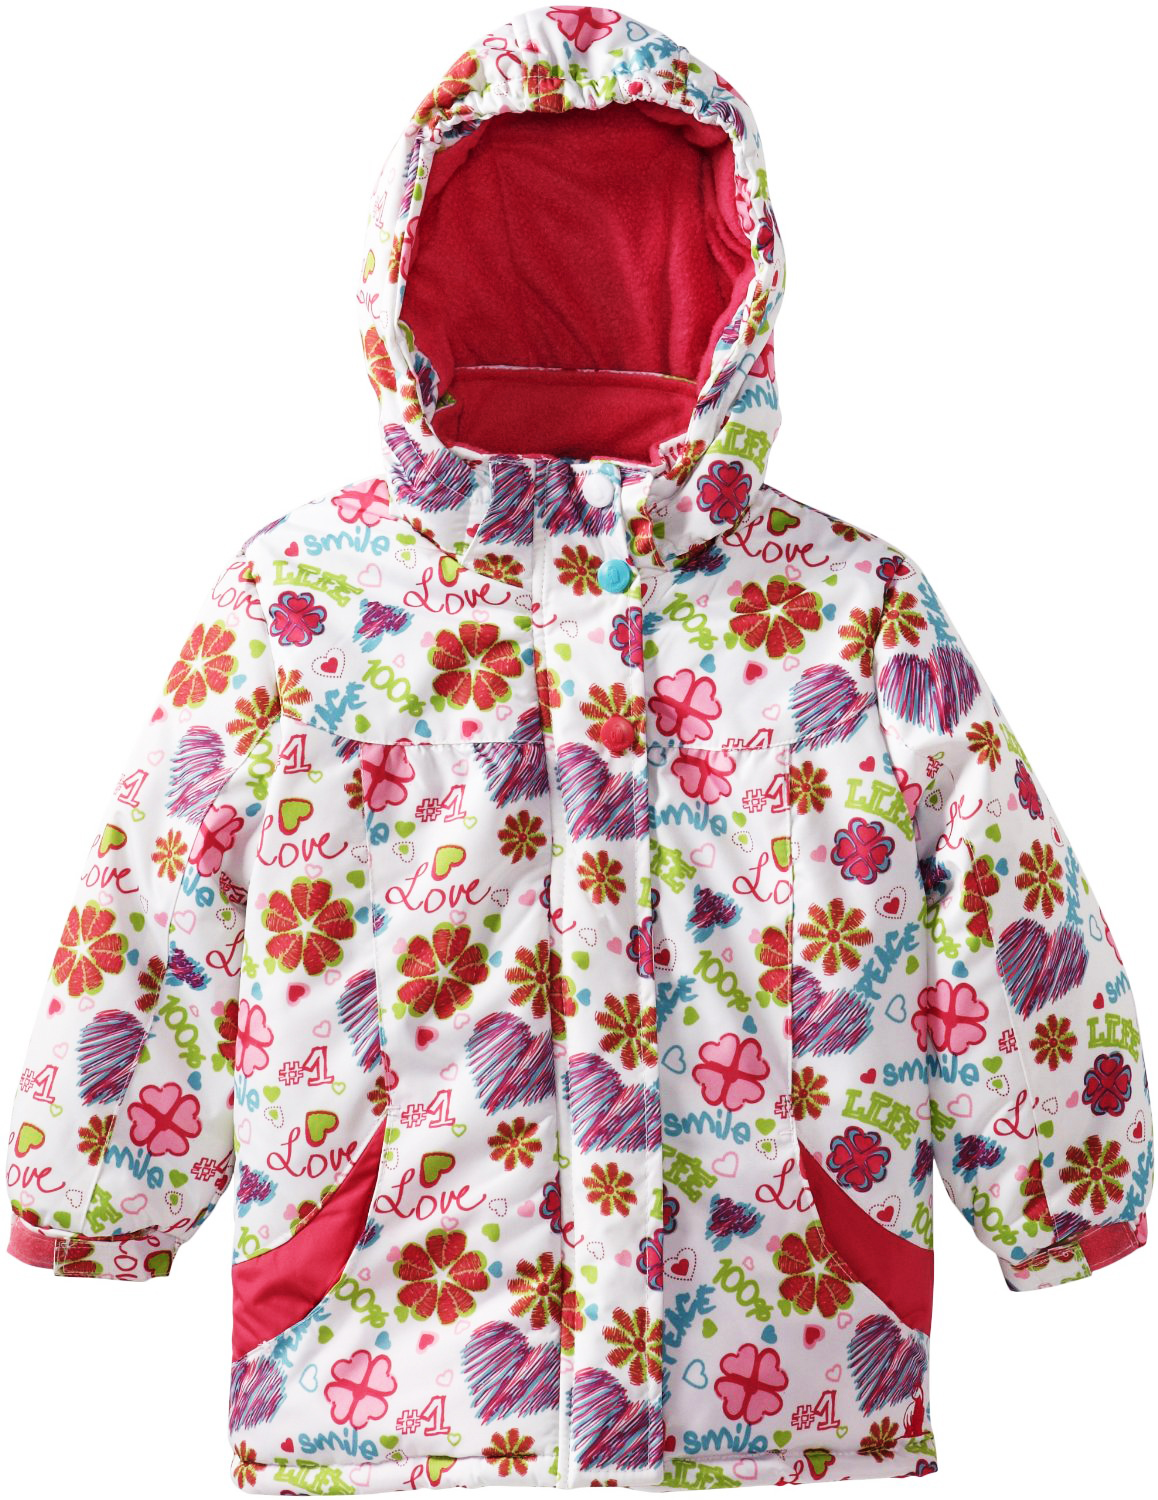 Rugged Bear Baby-Girls Love All Over Printed Ski Winter Jacket Coat at Sears.com